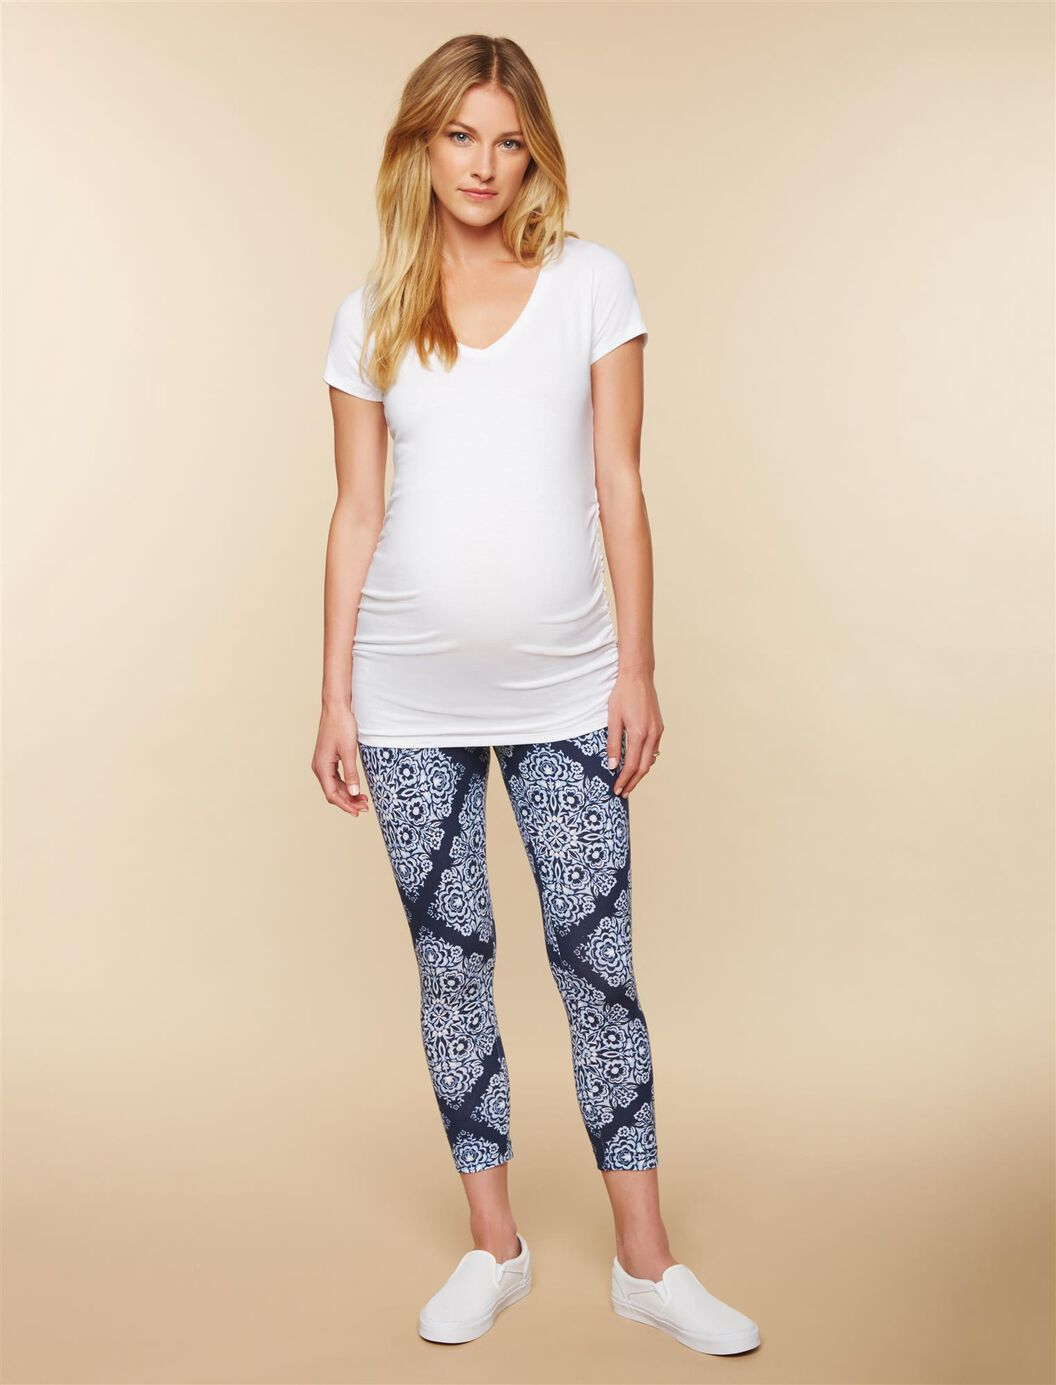 Secret Fit Belly Printed Maternity Crop Leggings- Blue Bandanna at Motherhood Maternity in Victor, NY | Tuggl